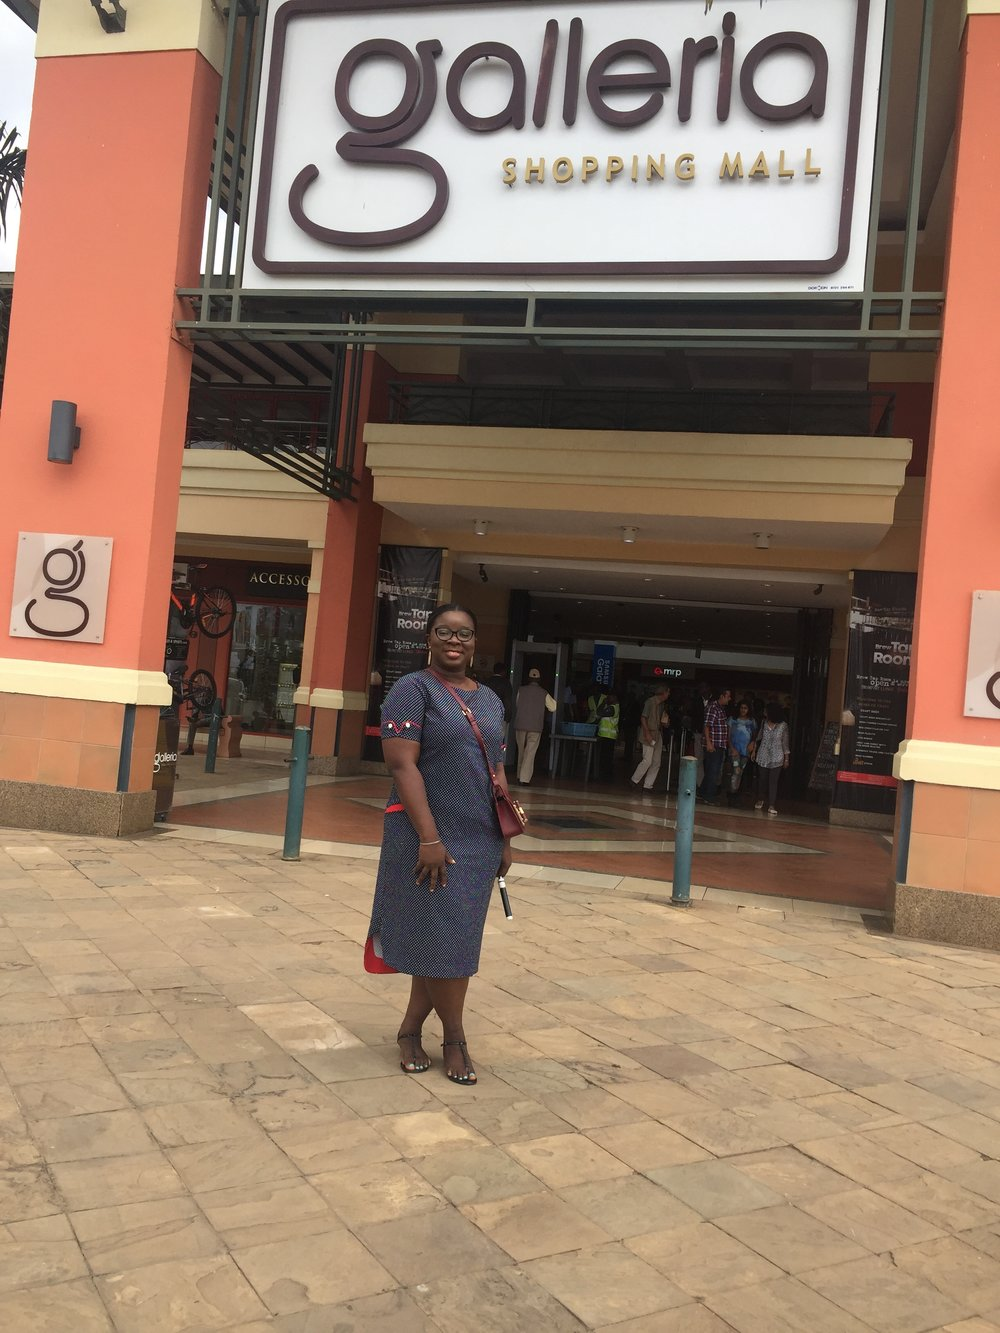 Galleria shopping mall | The Ajala Bug